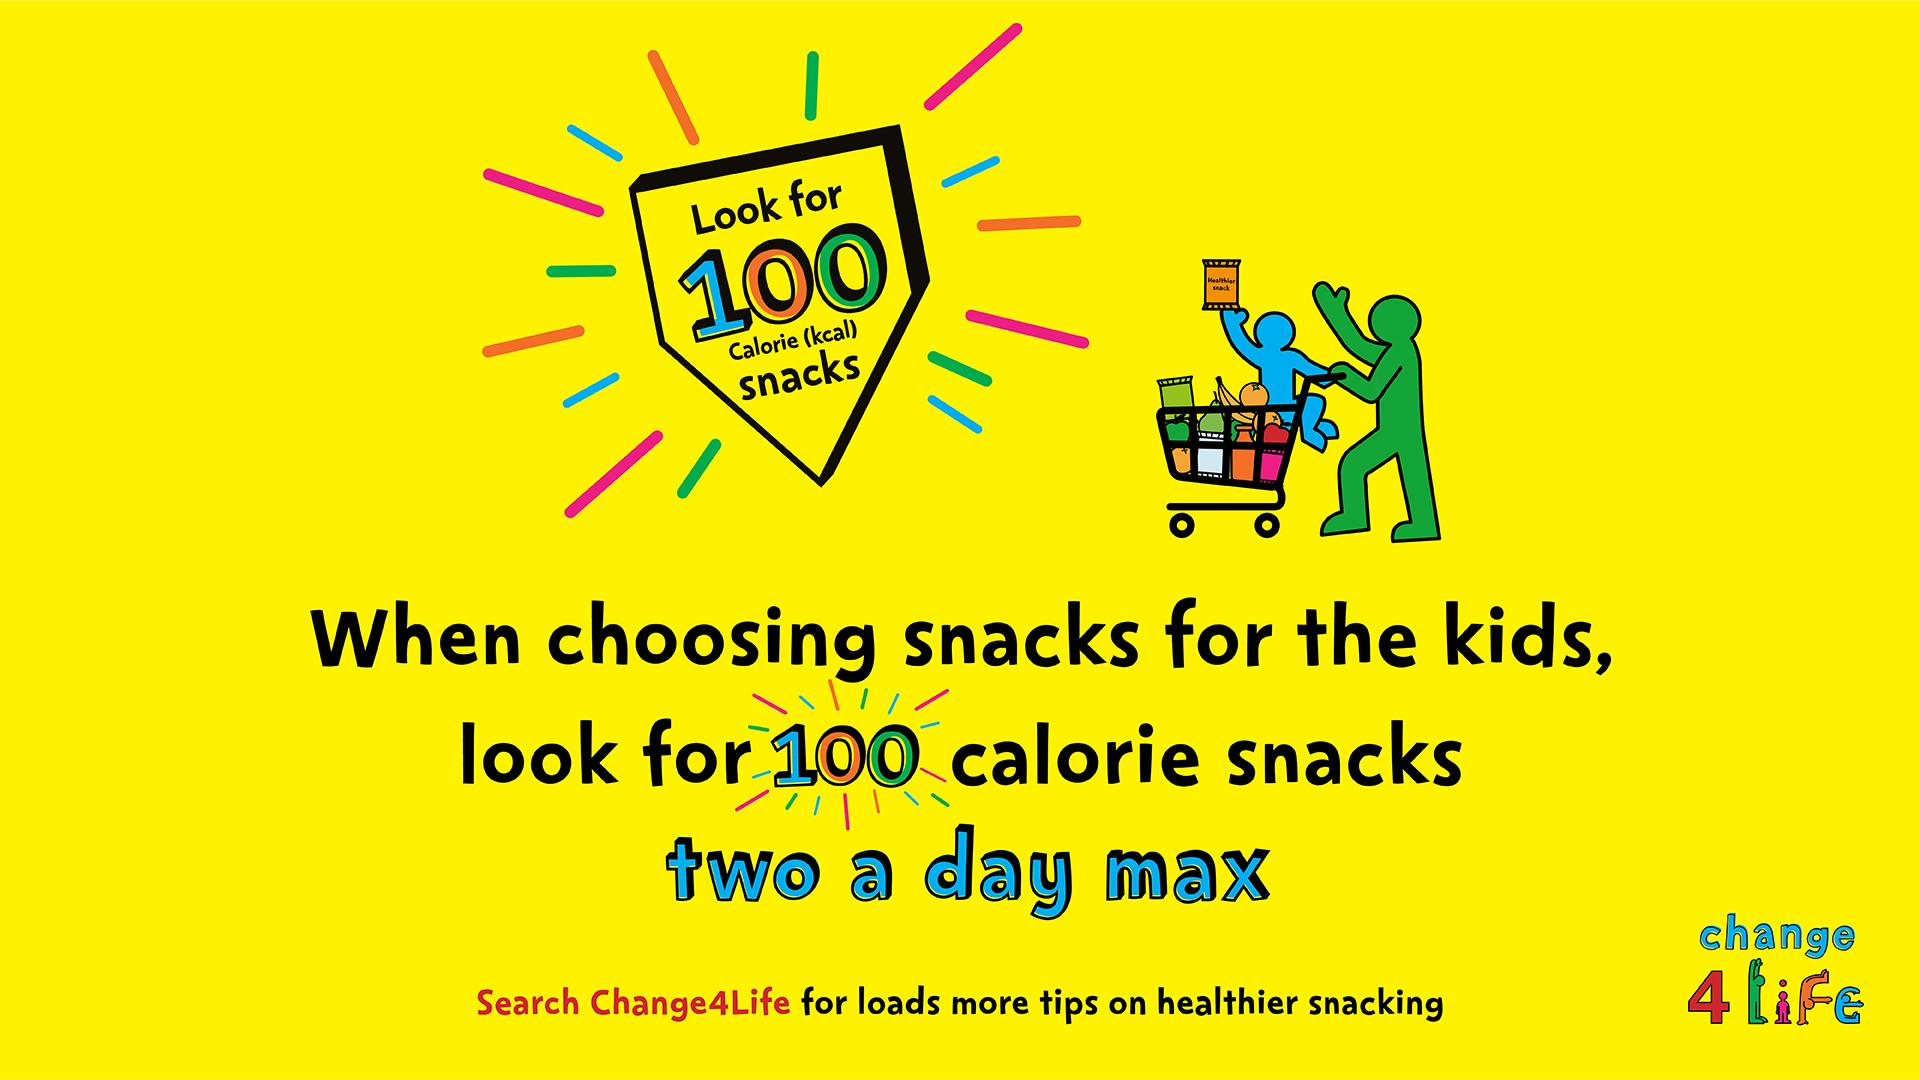 Change4Life launches new healthier snacking campaign